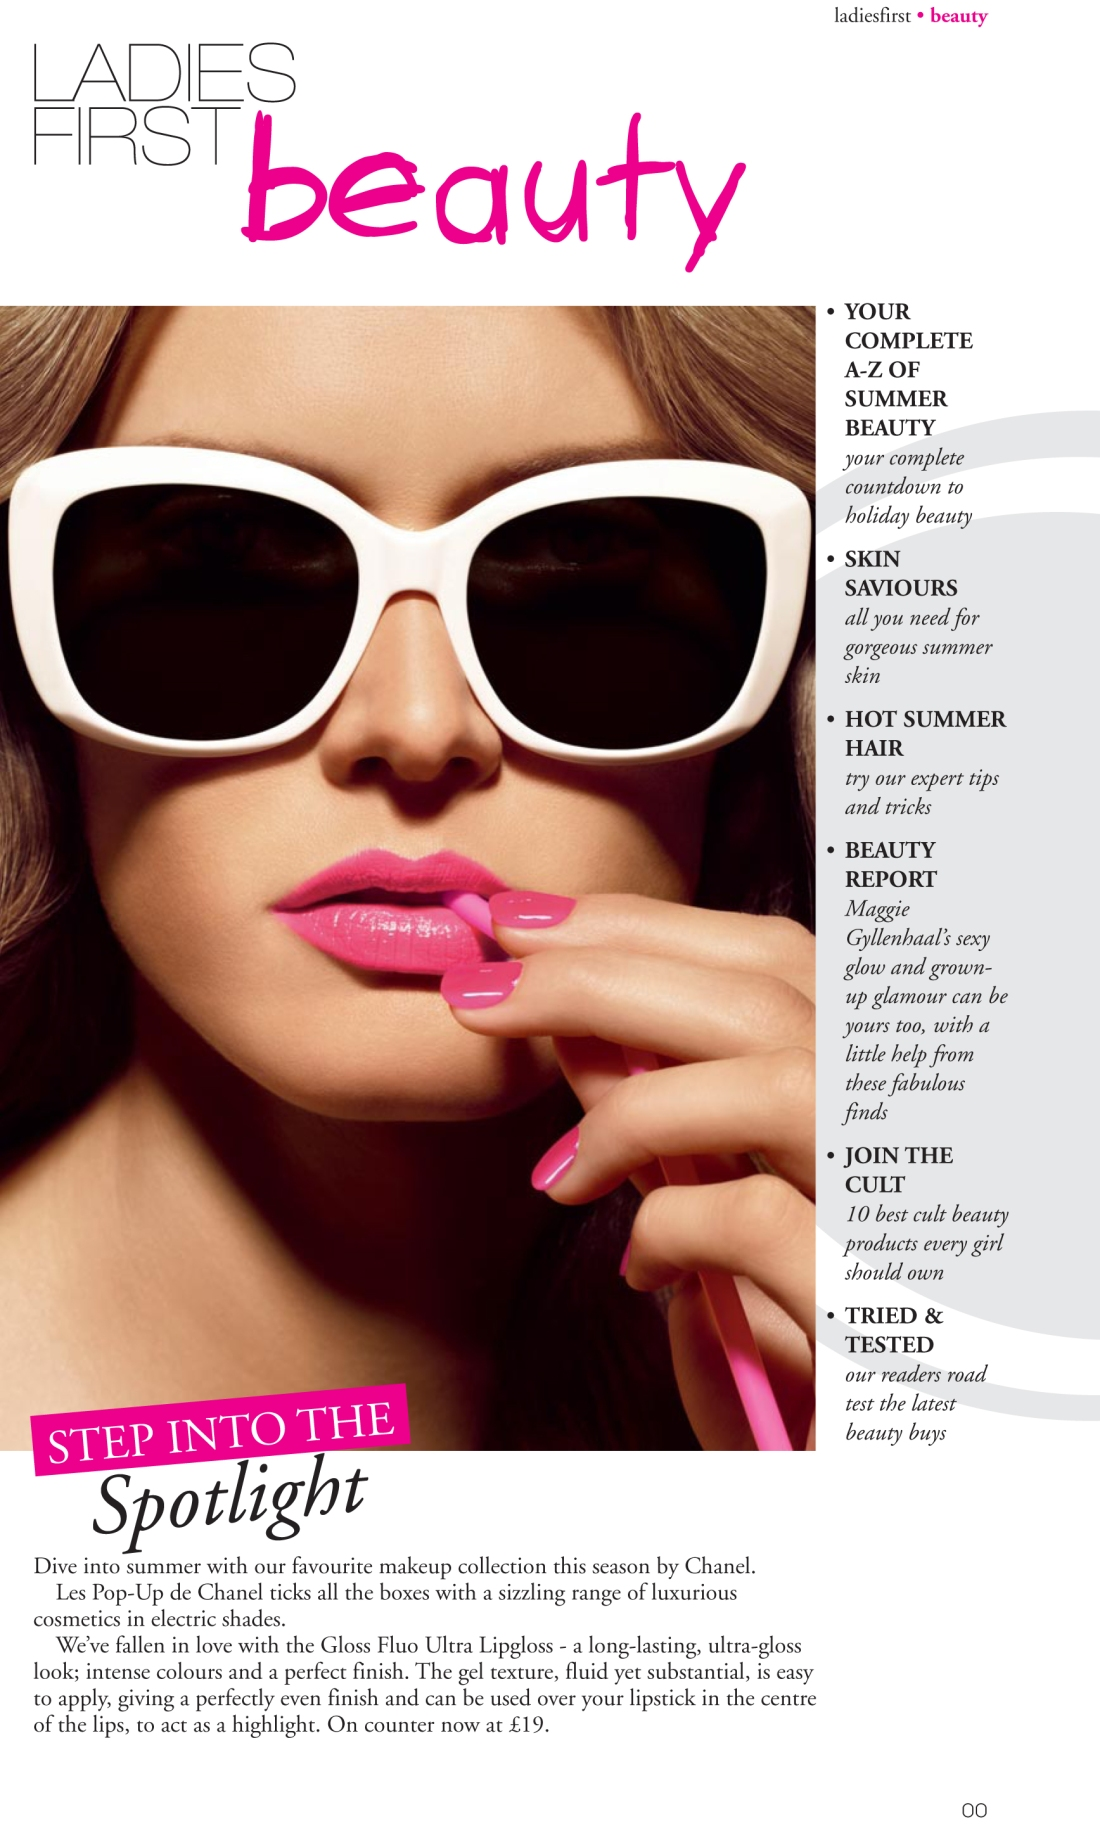 Beauty section lead page - Ladies First Summer 2010 issue - Amy Lewis